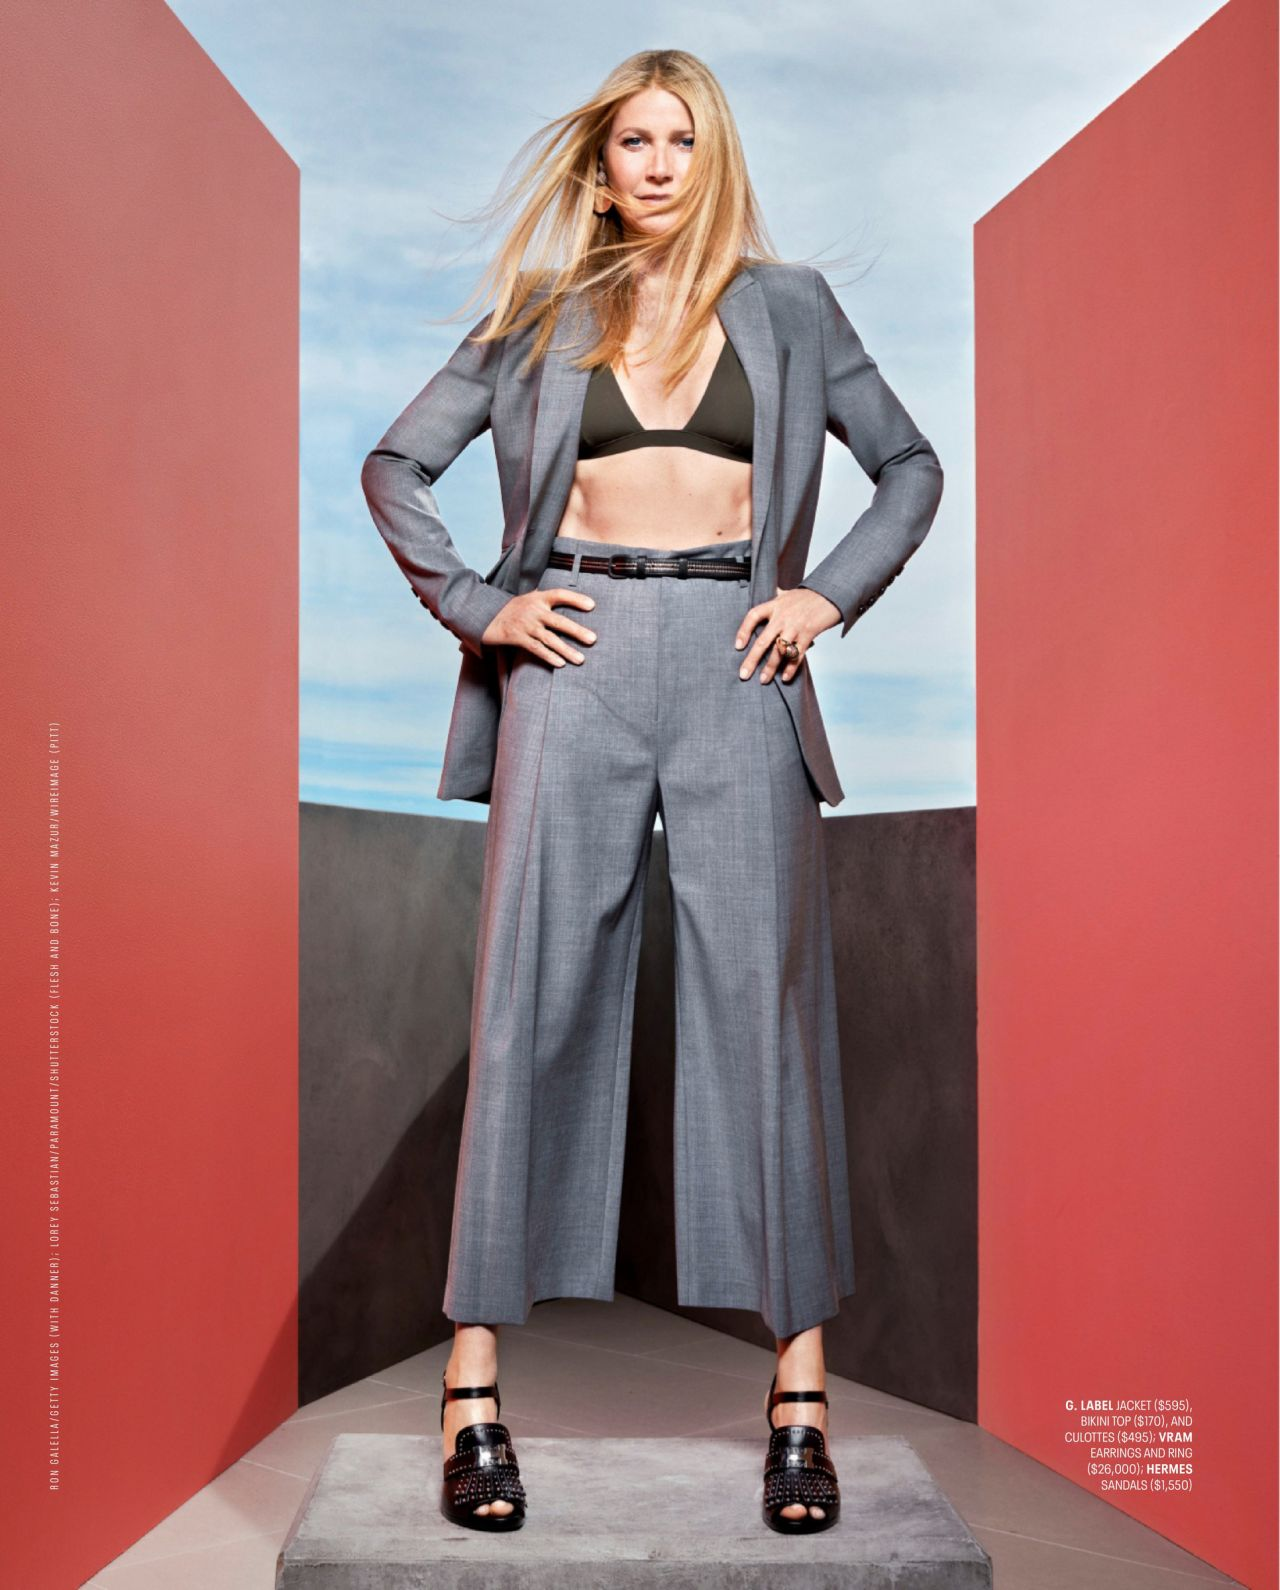 gwyneth-paltrow-covers-town-country-magazine-may-2020-issue